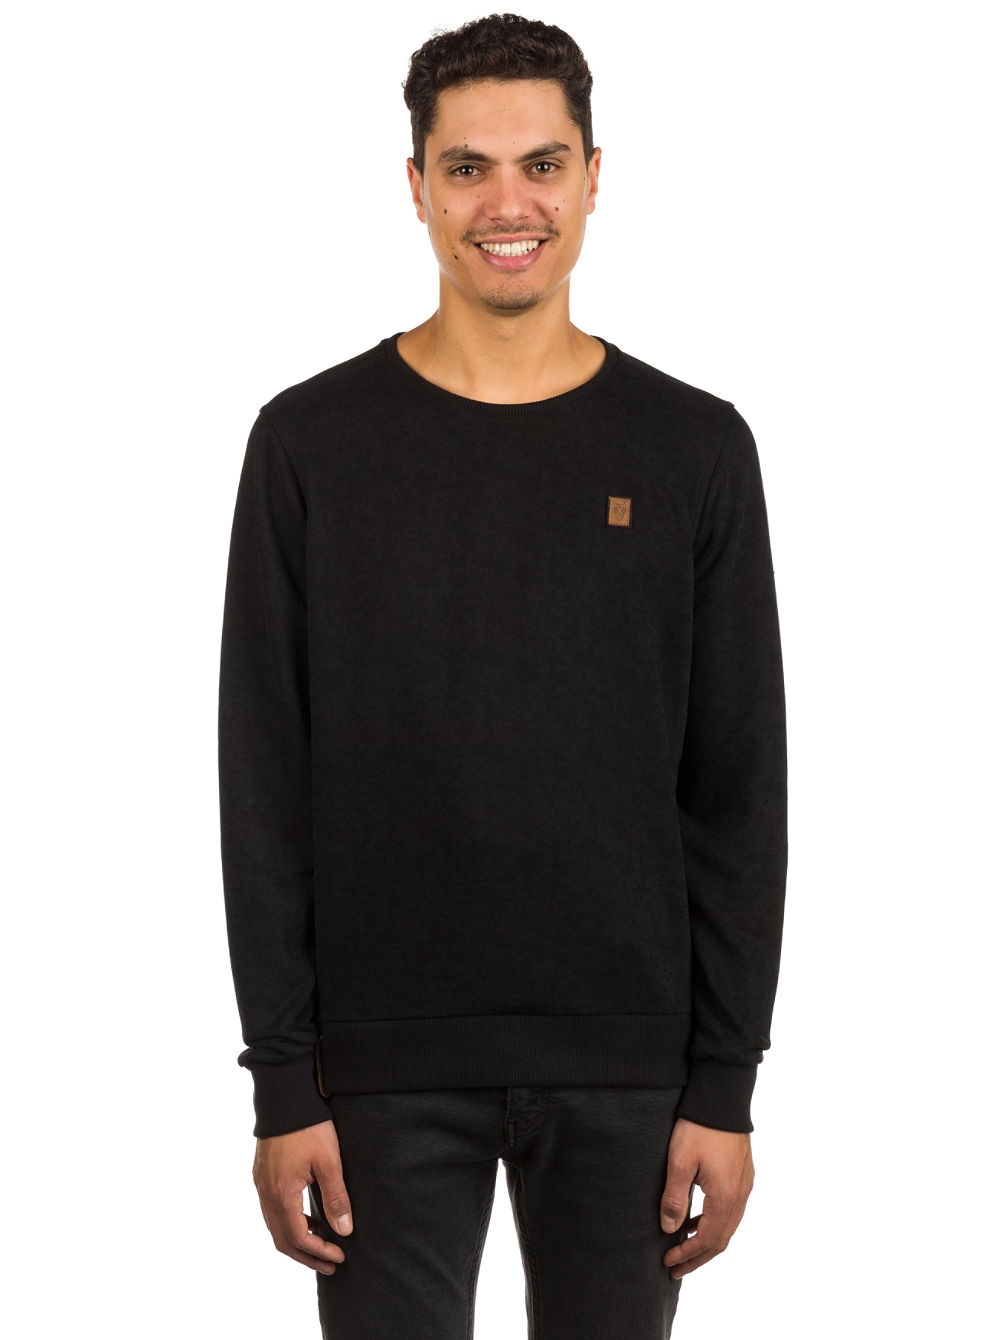 Boys Are Krass II Sweater